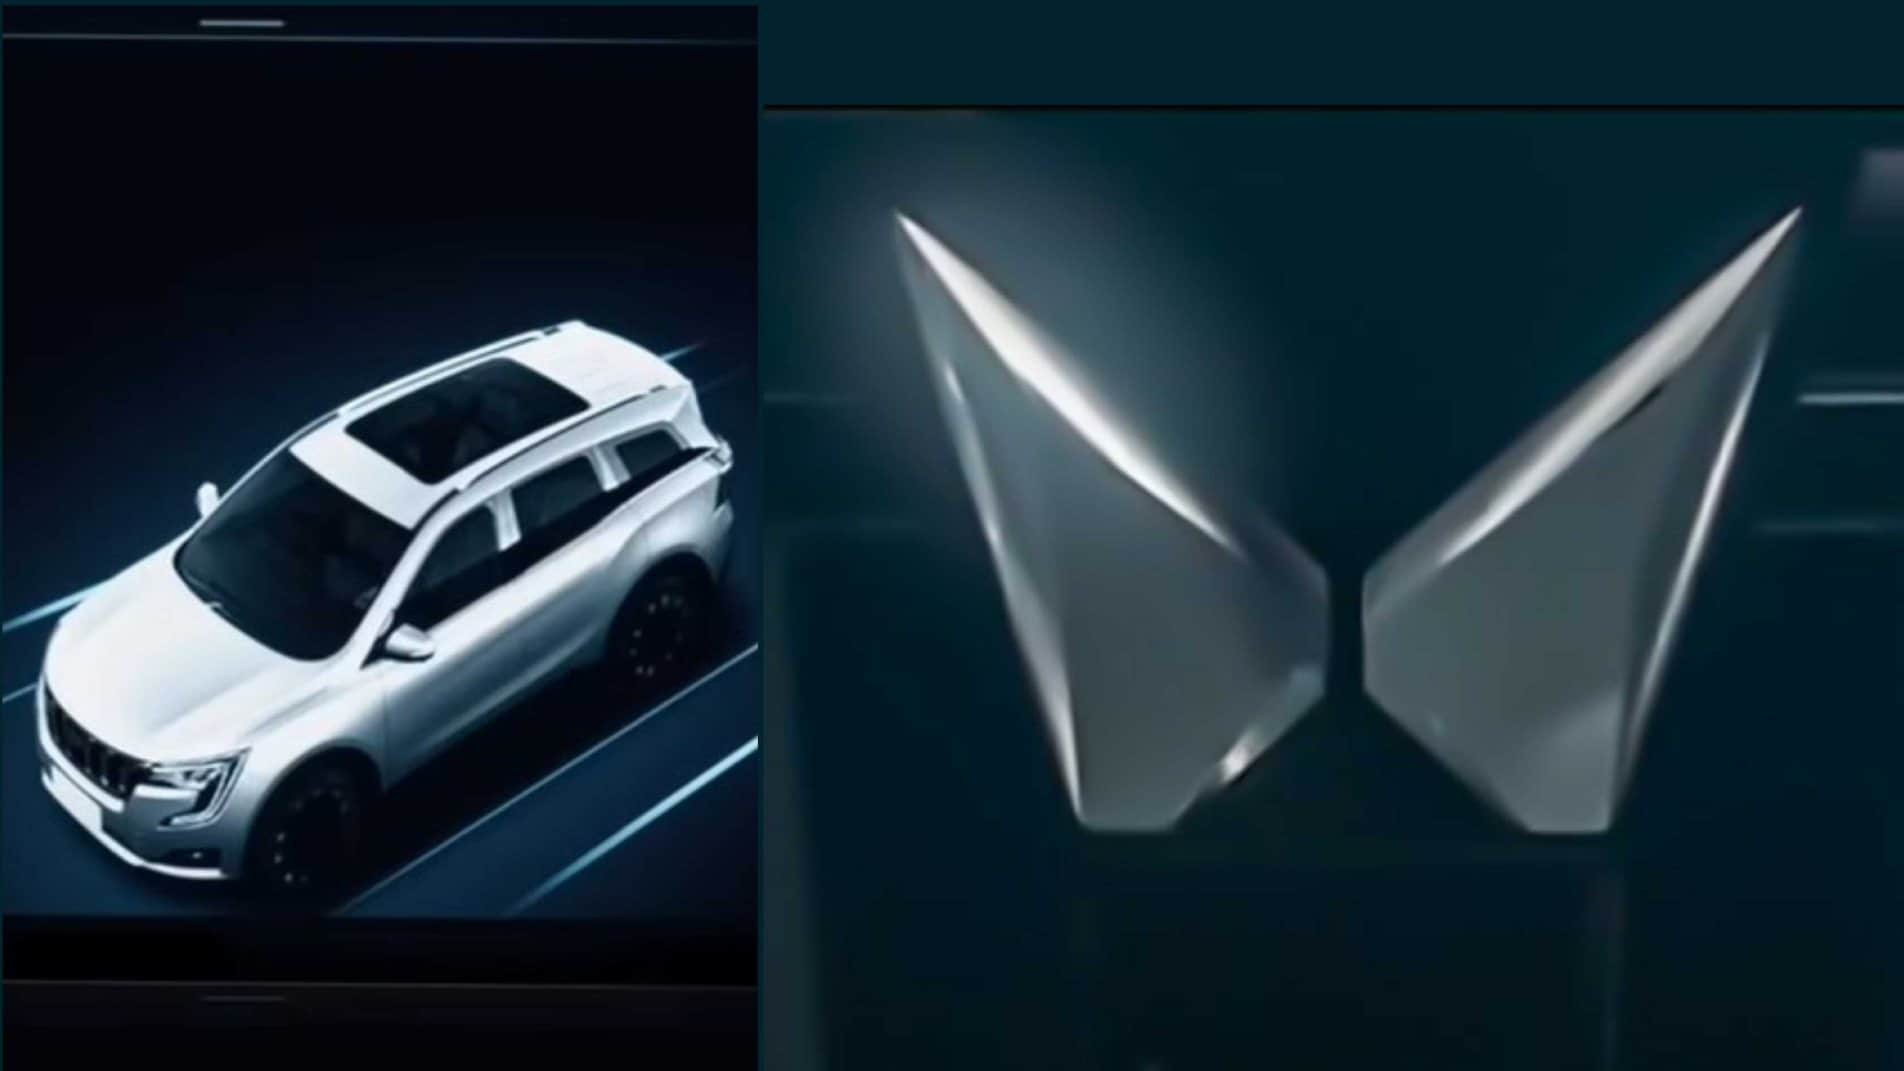 Mahindra XUV700 To Debut With New Mahindra Logo, 'Twin Peaks' Badge To Also Be Featured On Other Mahindra SUVs – Technology News, Firstpost